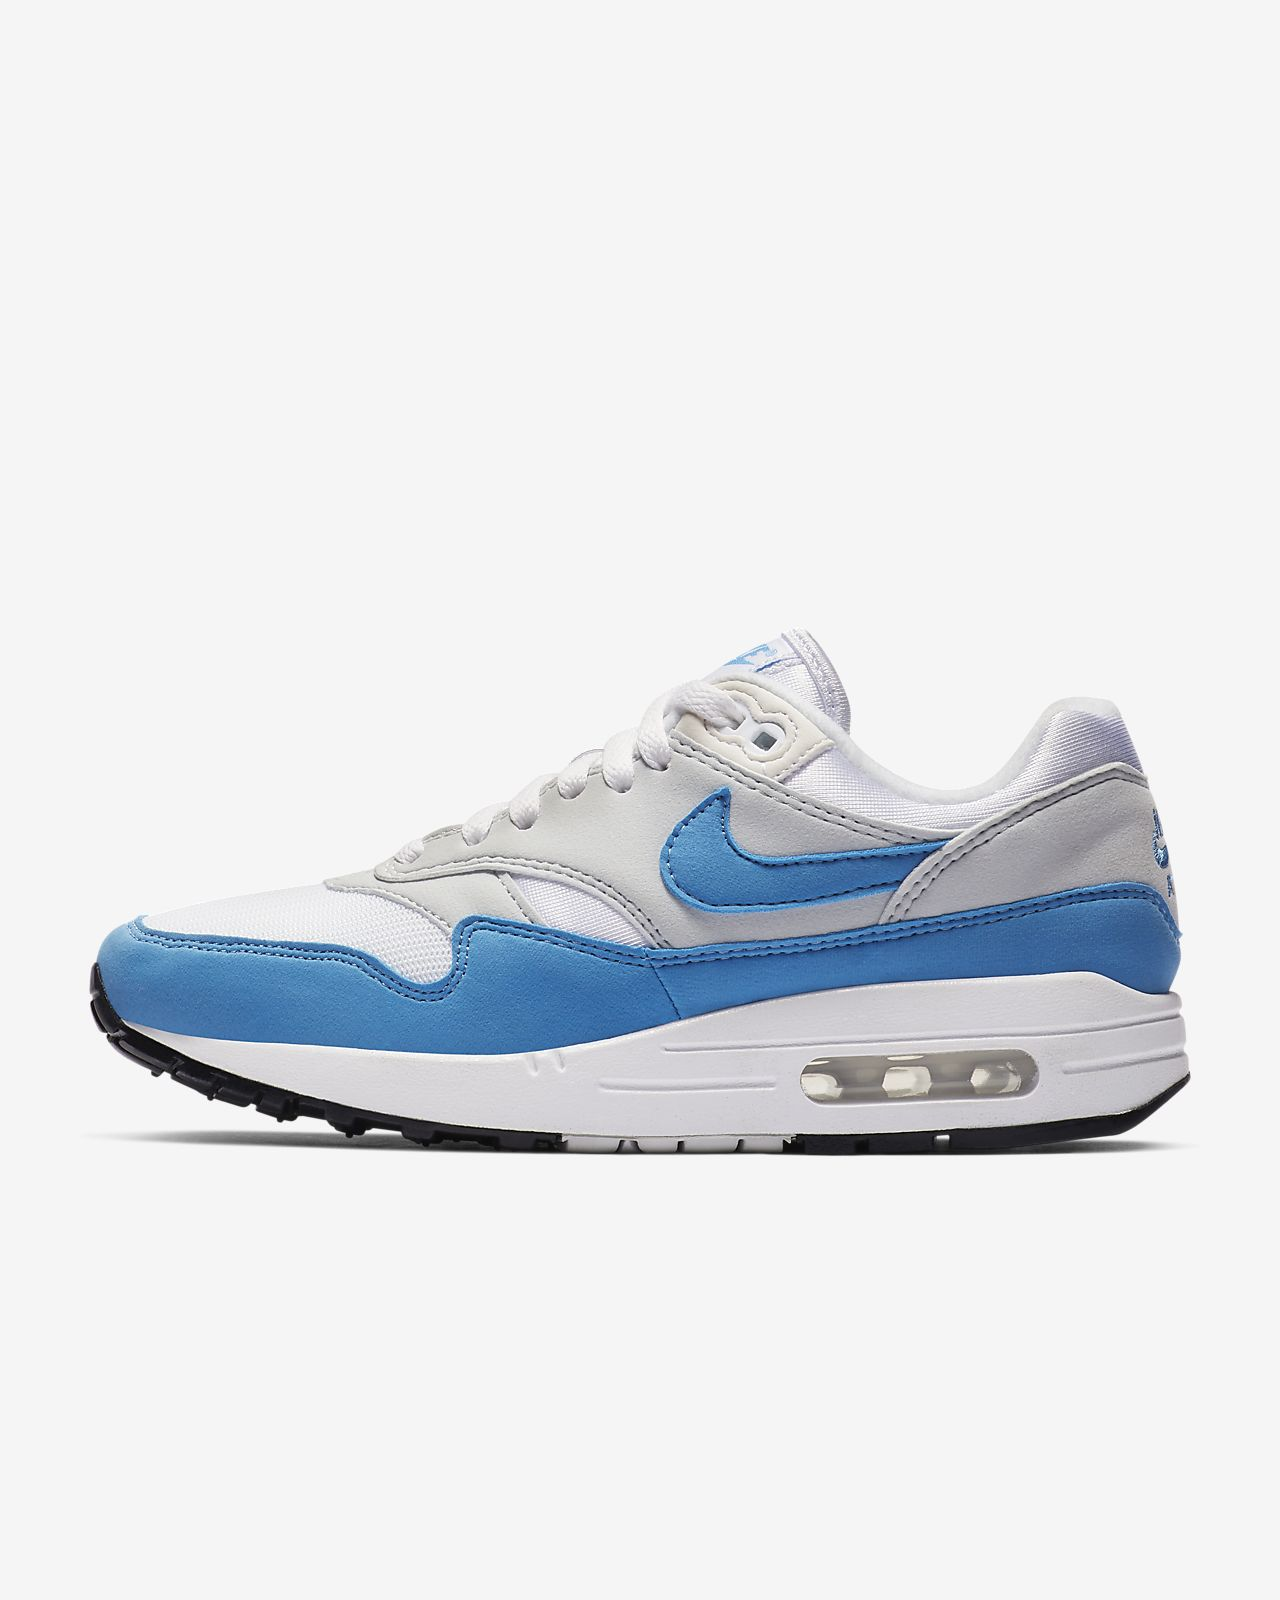 huge discount 9b003 85e29 ... Buty damskie Nike Air Max 1 Essential